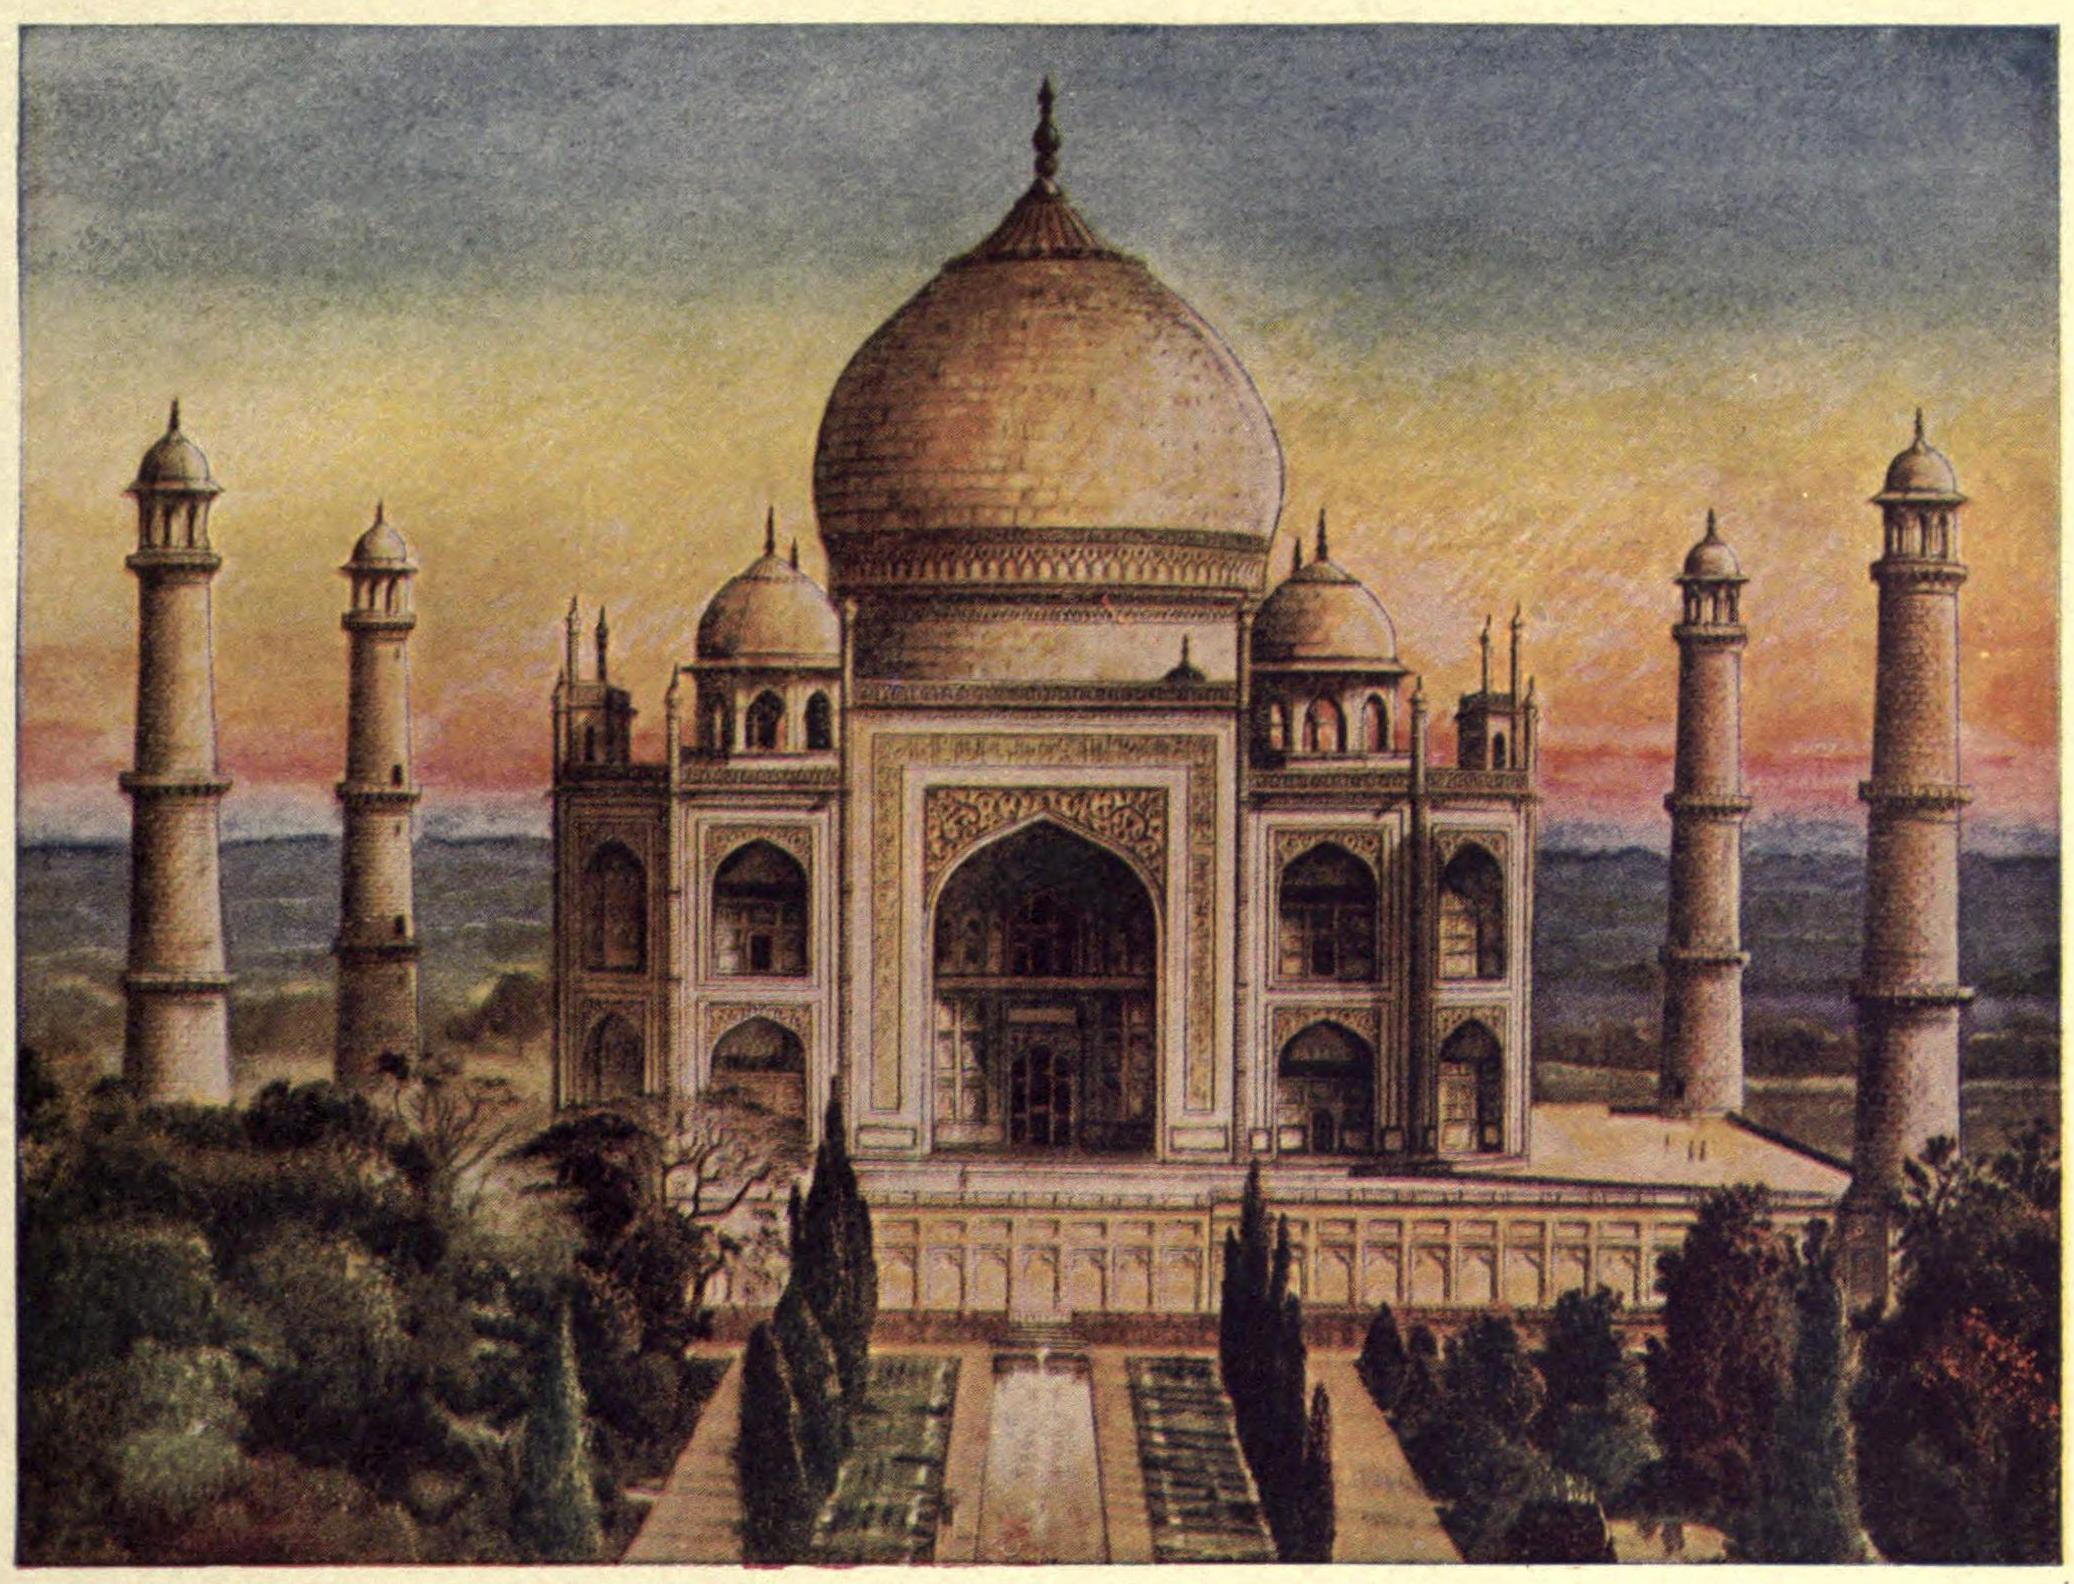 the_peerless_gem_of_mohamaden_architecture_-_the_taj_mahal_at_agra